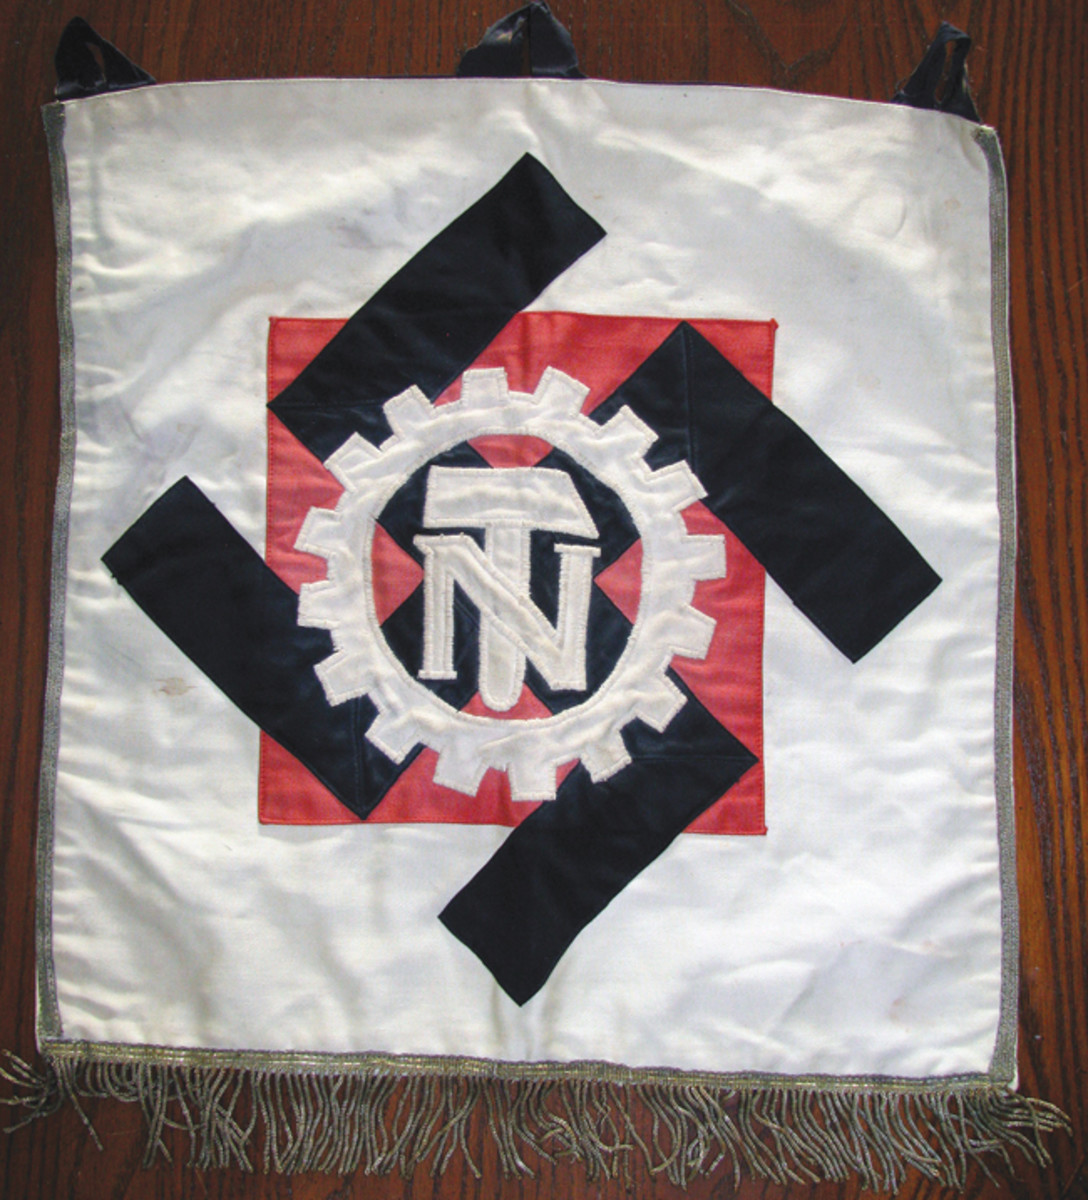 TENO trumpet banners and flags shared the same white, red, and black design.